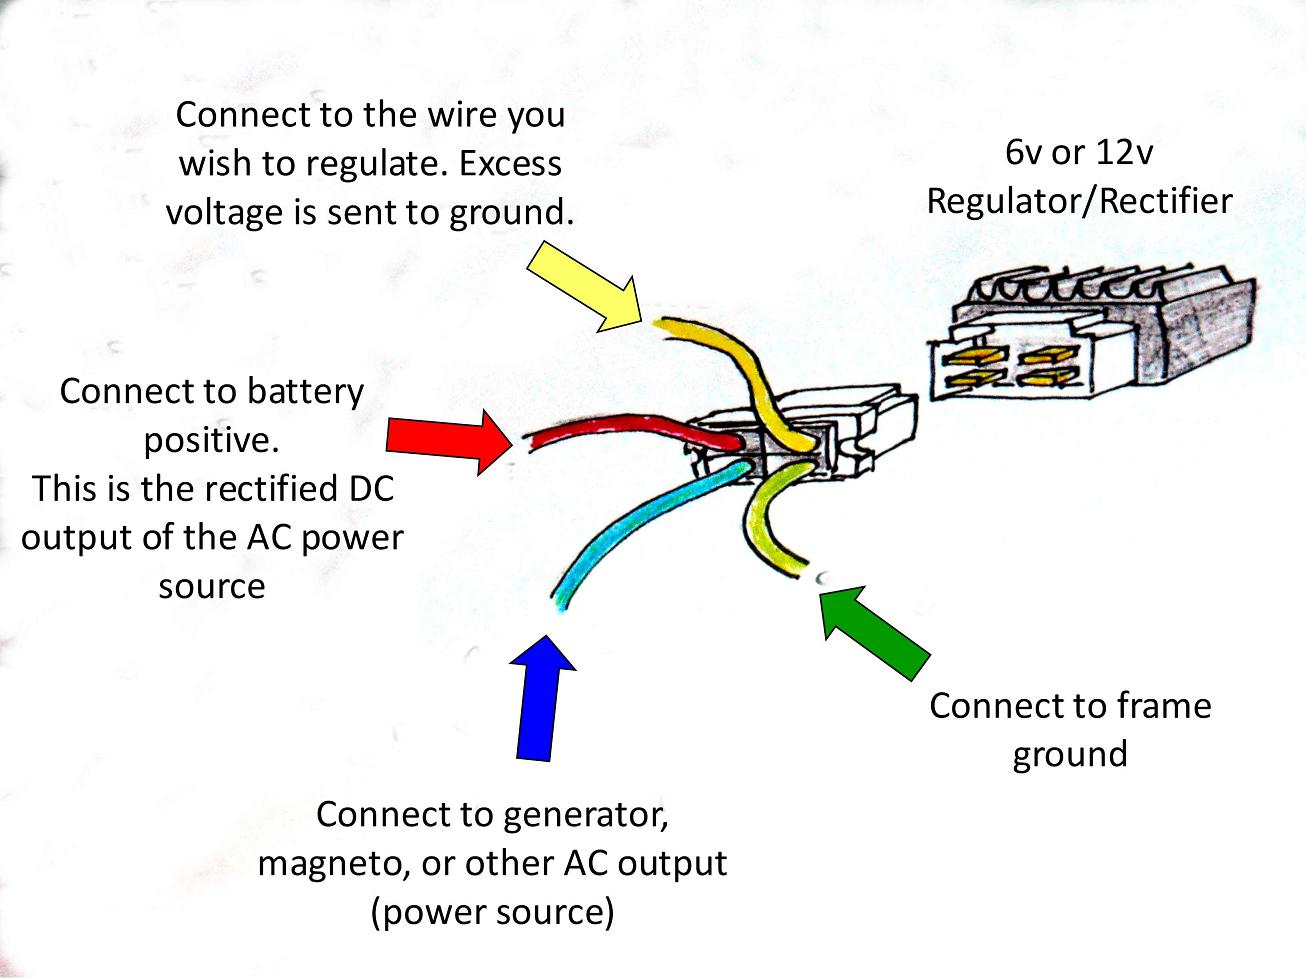 dratv_2267_13269058 4 wire regulator rectifier wiring diagram efcaviation com 5 wire rectifier diagram at readyjetset.co